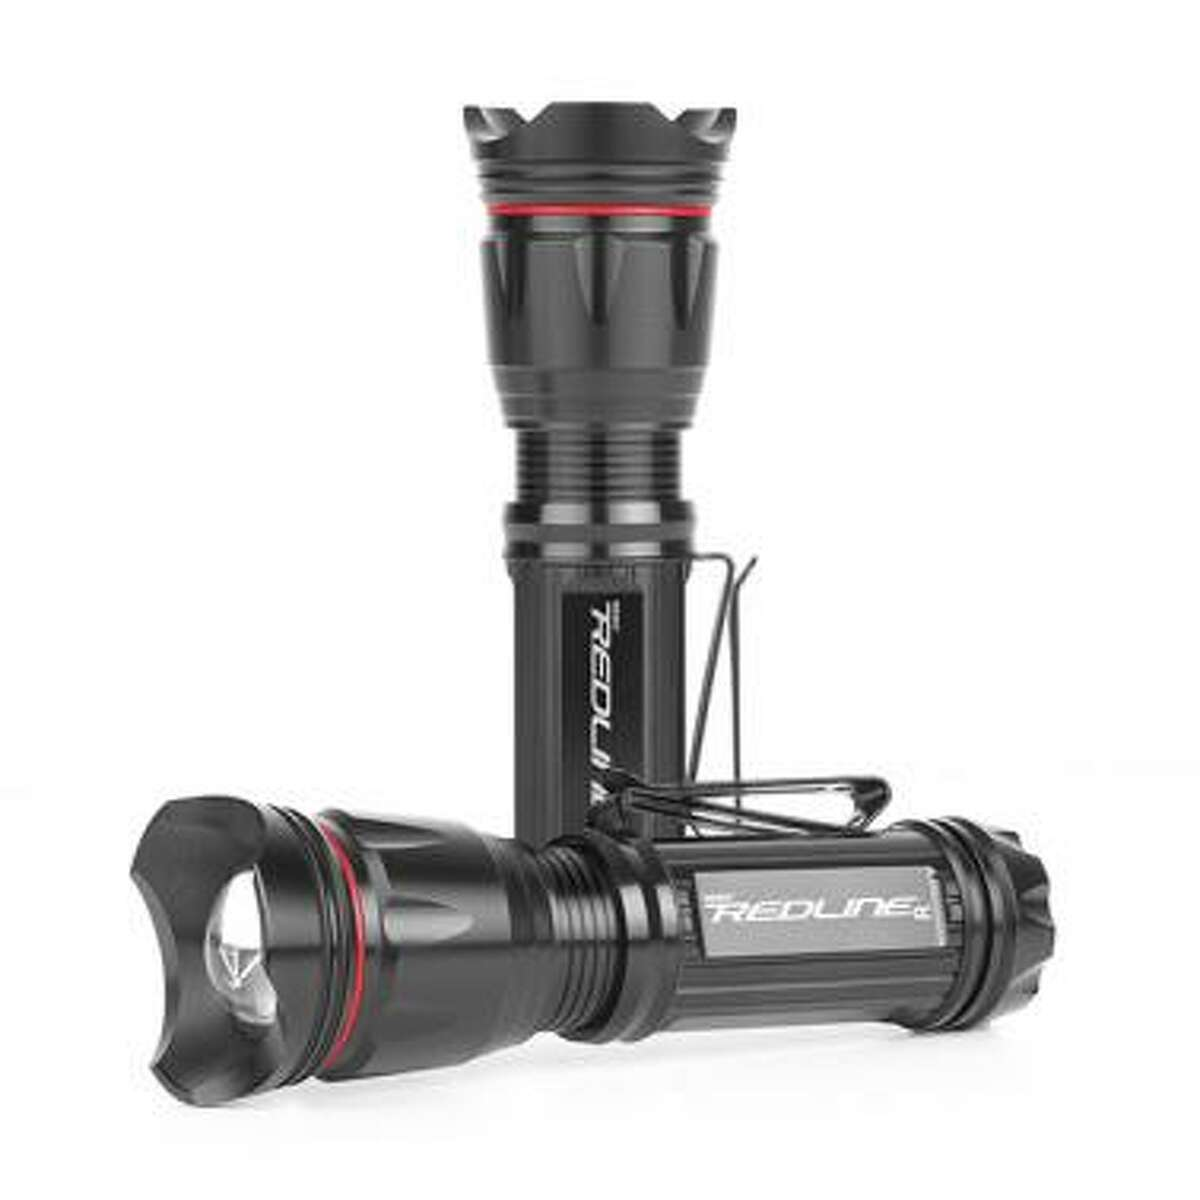 What to get: For the outdoorsy person The gift: Whether they love fishing, hunting, camping, hiking or biking, they're going to need a good flashlight. For around $20, the Redline OC flashlight from Nebo Tools is your best beam for the buck, packing a whopping 600 LUX into its 4.8-inch frame. It's small size, two-way clip and magnetic base mean you can stick it anywhere - on your cap, on the side of your truck or bike, between your teeth - so you can devote all 10 fingers to whatever task is at hand. It's tactical edge front also provide a little extra striking power against whatever may unexpectedly go bump in the night. The gift card: REI, Bass Pro Shops